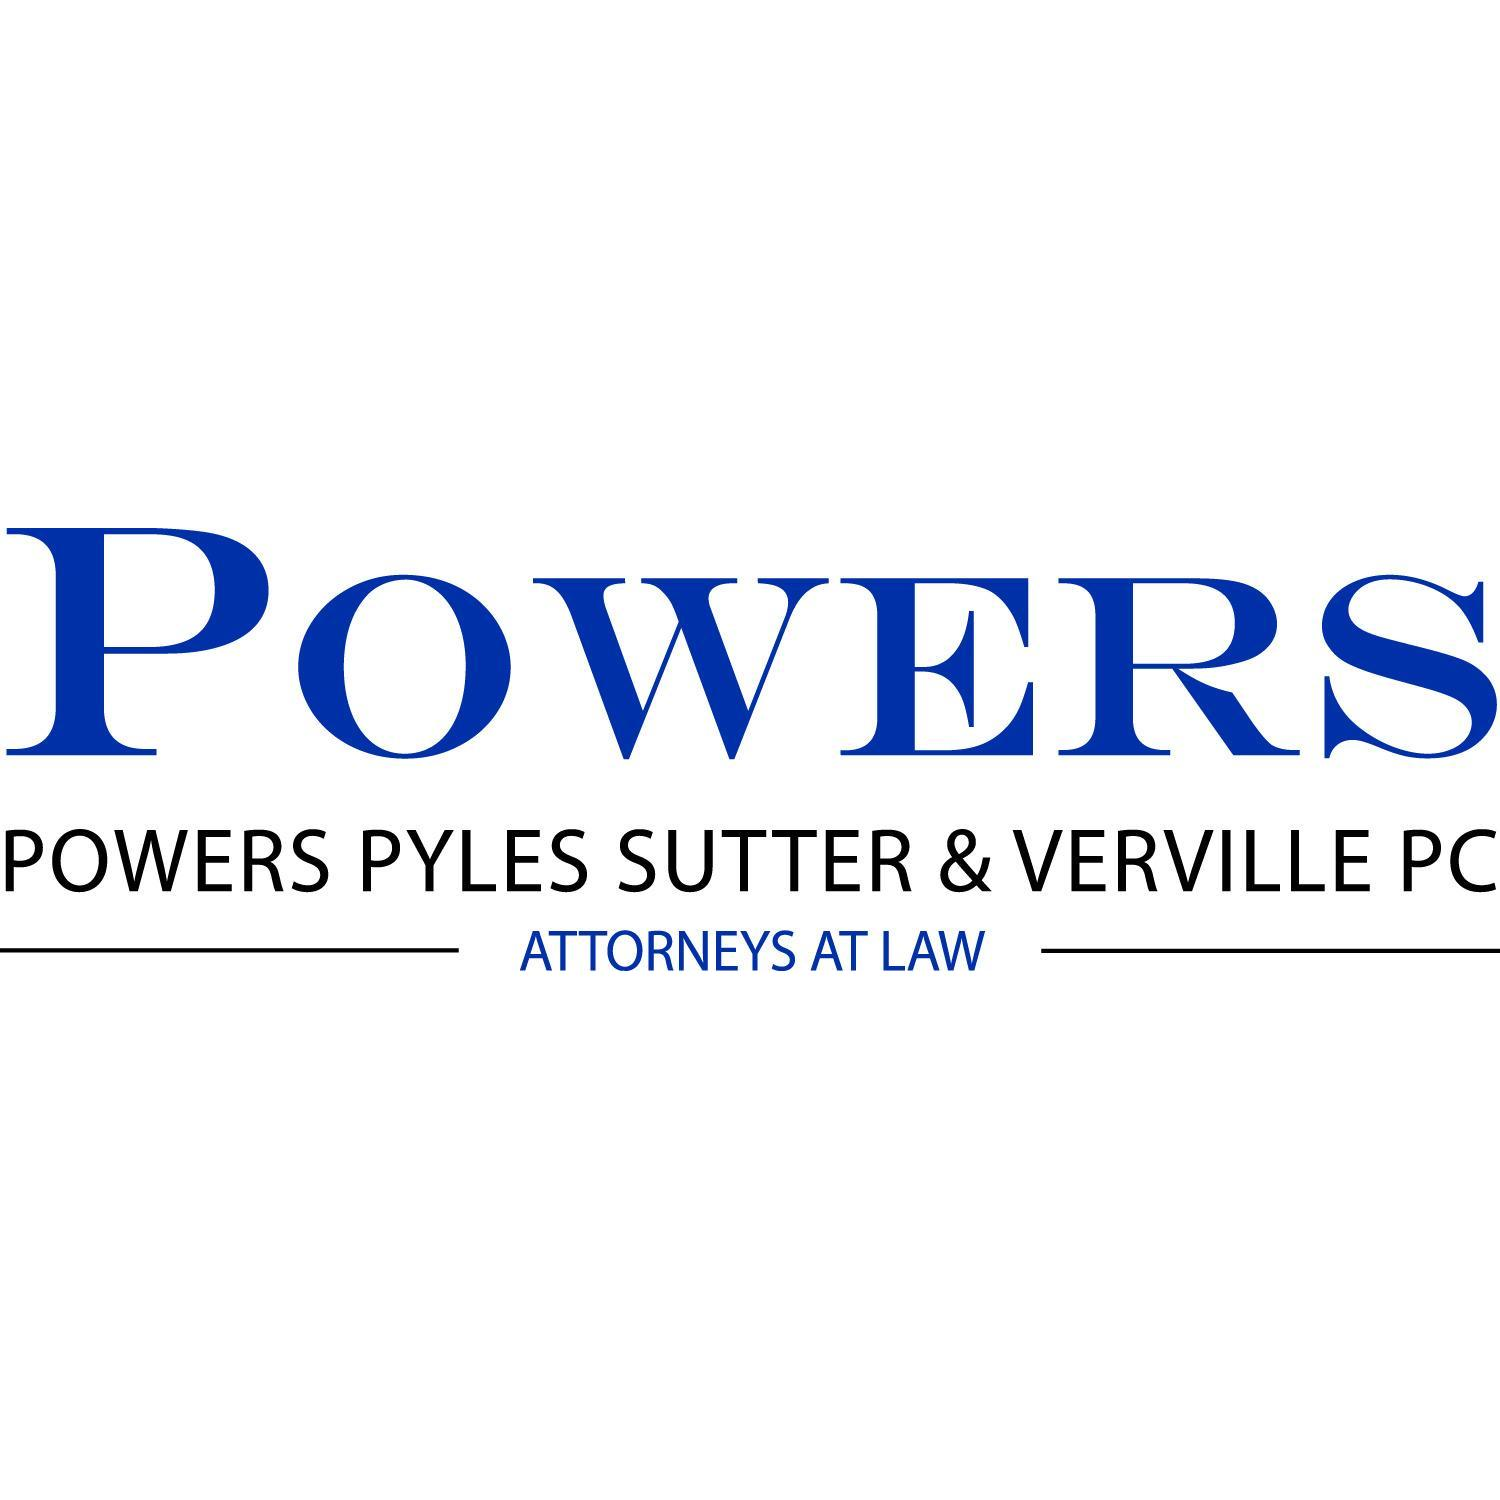 Powers Pyles Sutter & Verville PC